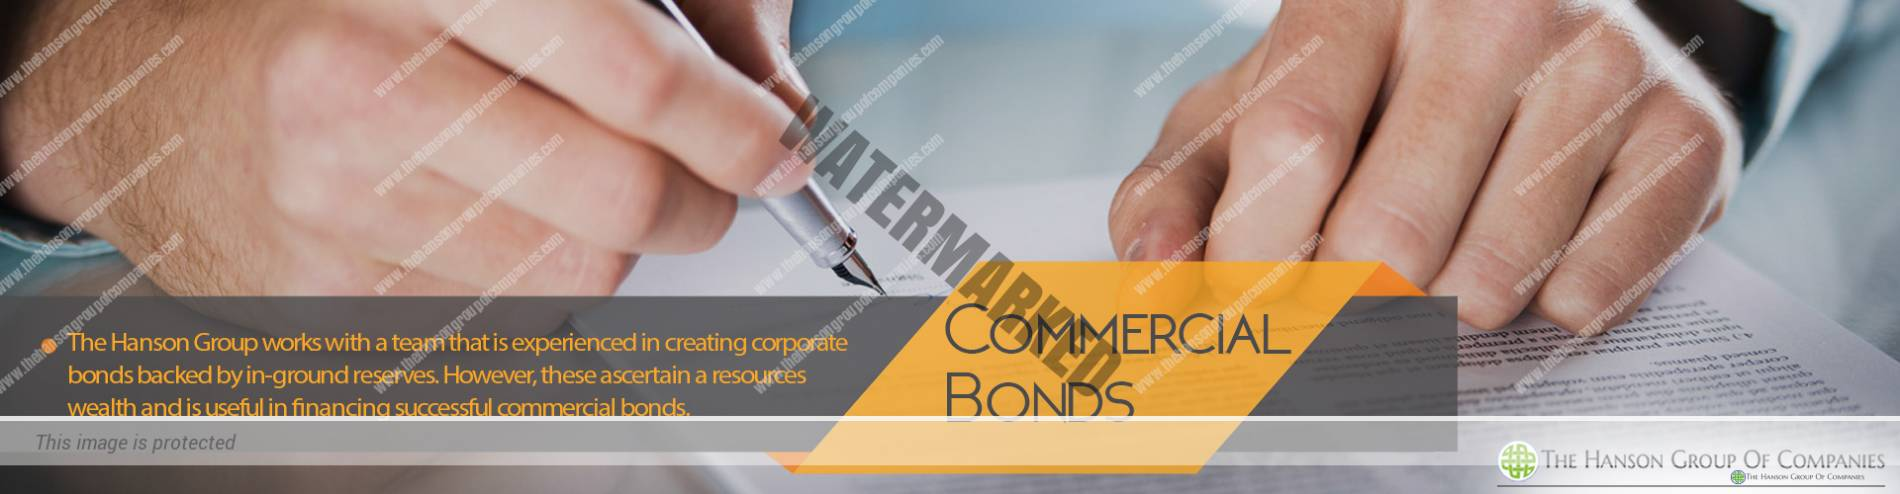 commercial-bonds